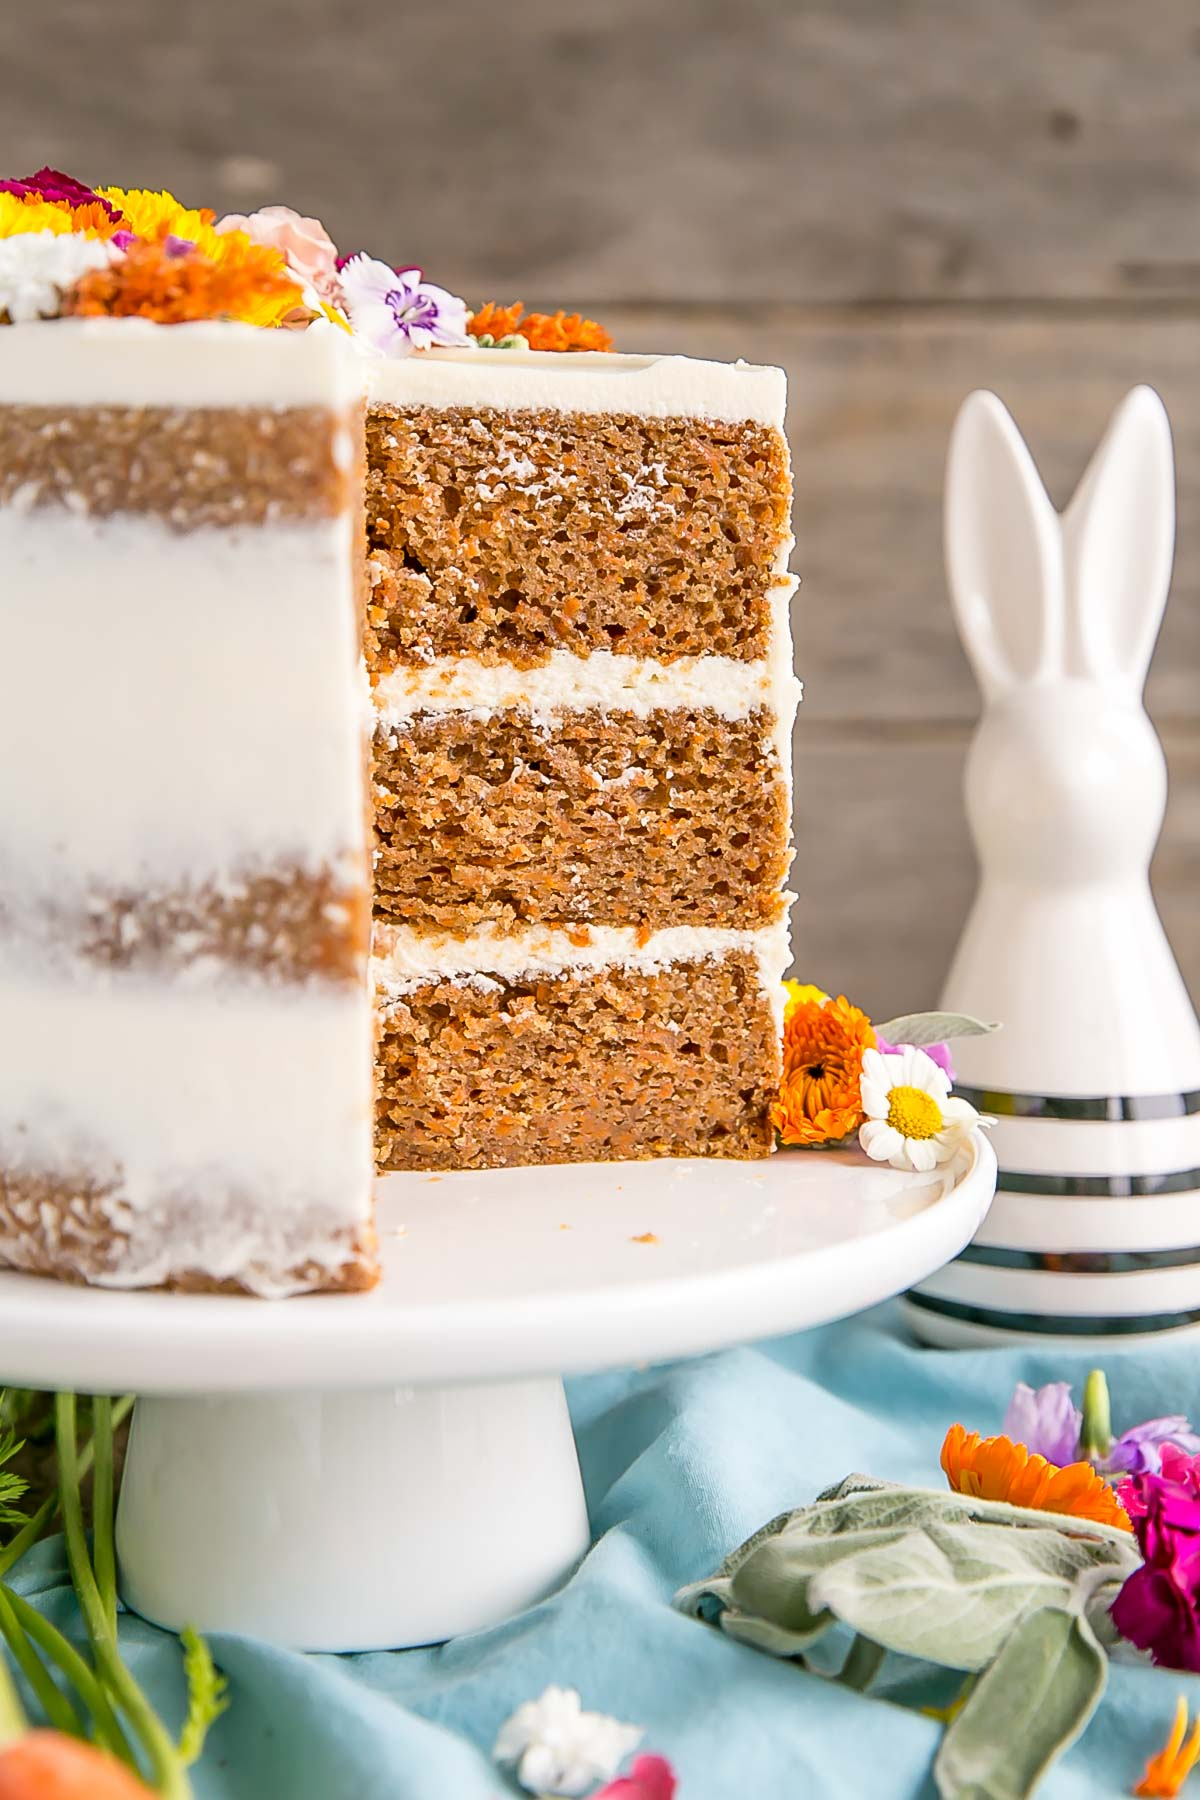 Carrot Cake with Cream Cheese Frosting   Liv for Cake Naked carrot cake with edible flowers